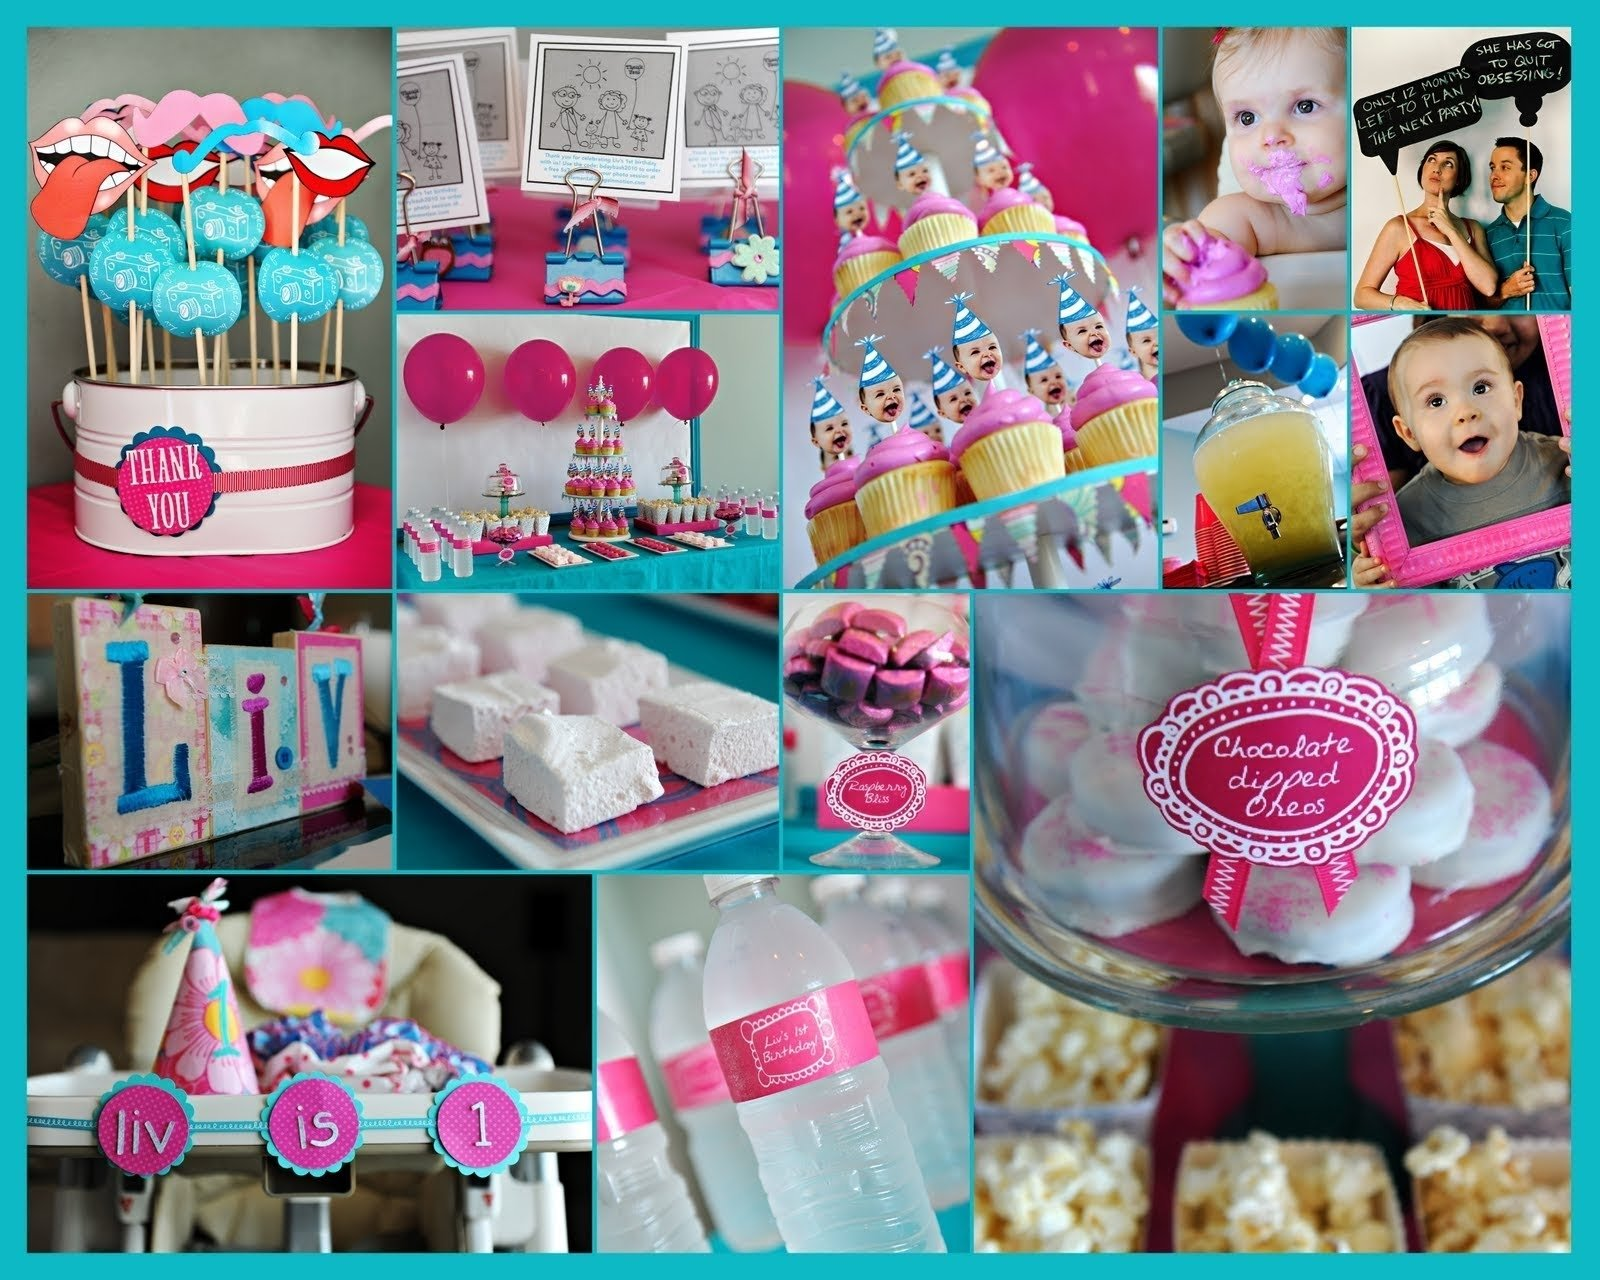 10 Lovable 4 Yr Old Girl Birthday Party Ideas first birthday party ideas 1st birthday party ideas kids 2020